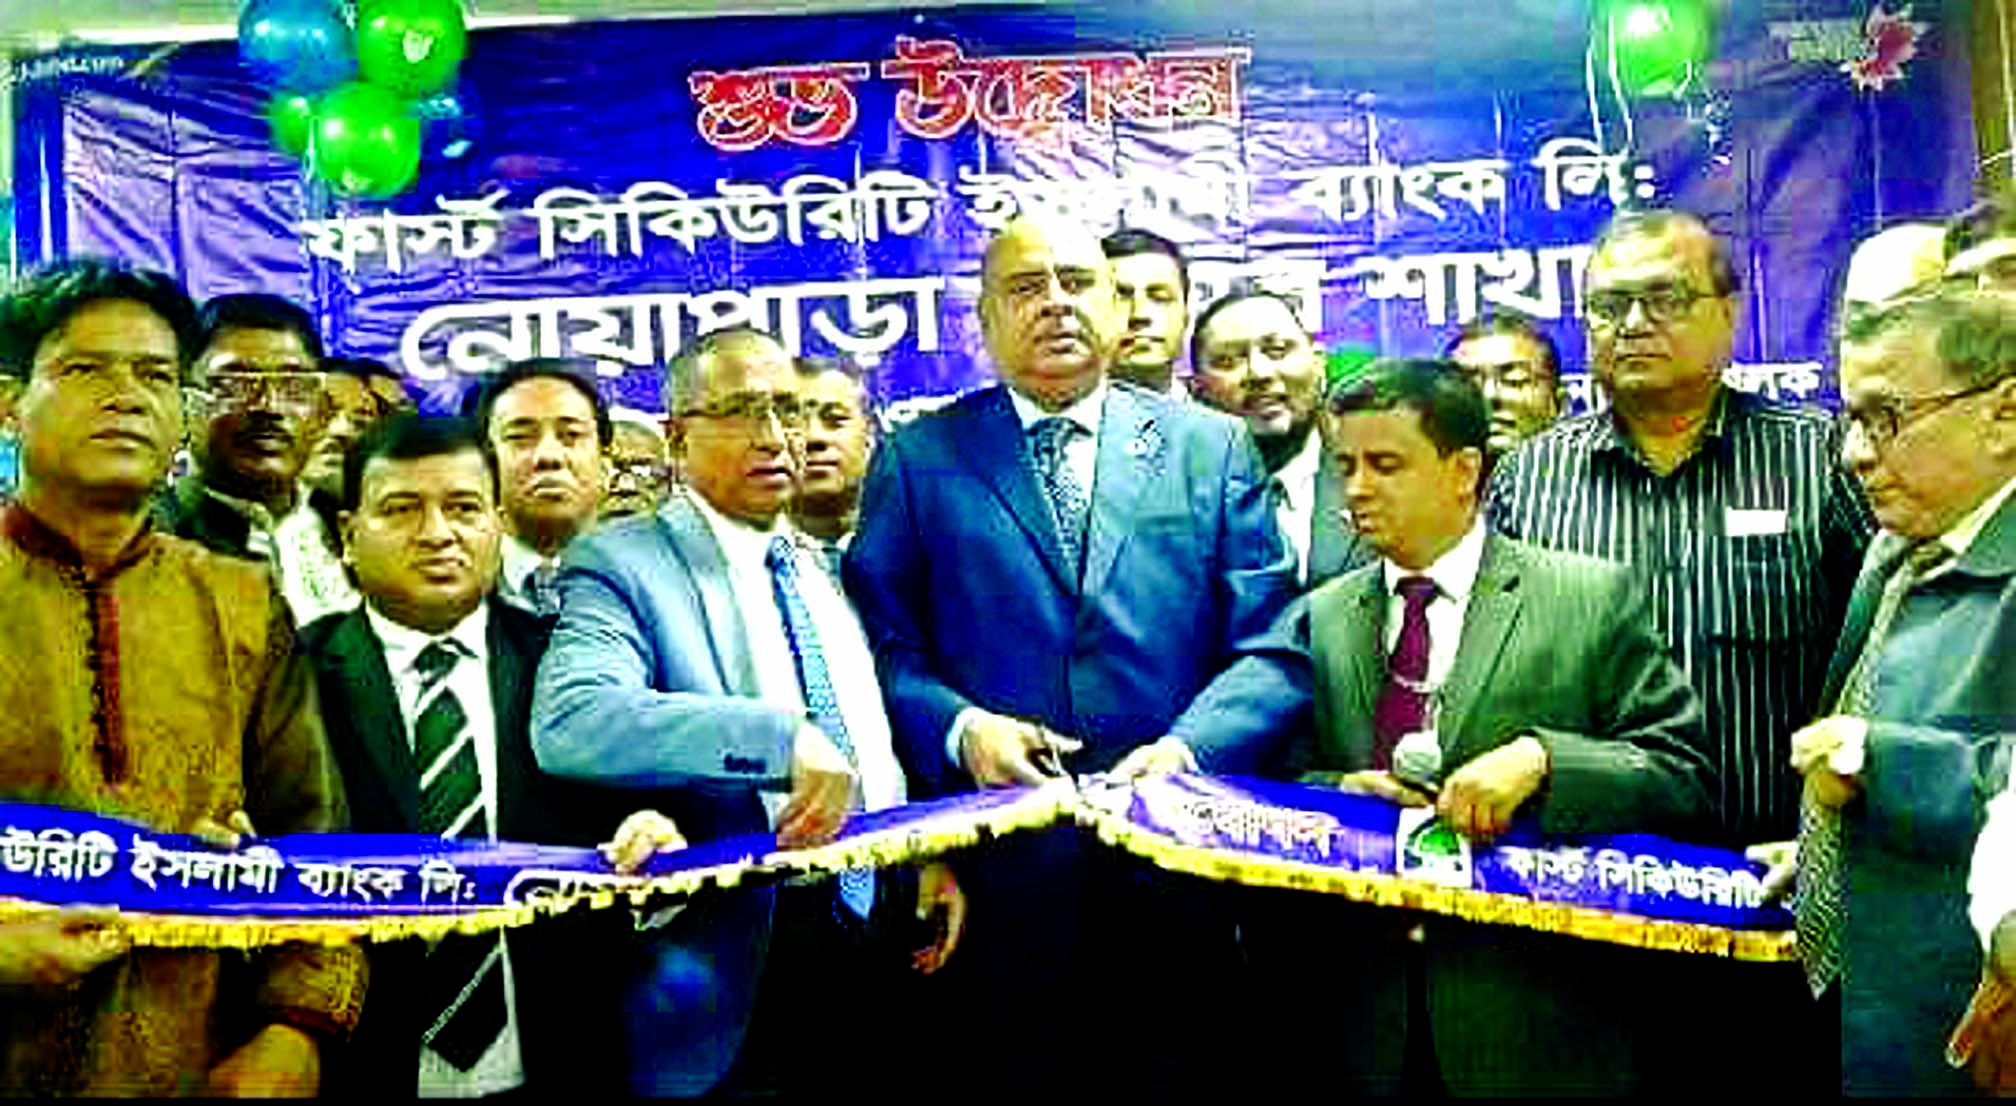 Syed Waseque Md Ali, Managing Director of First Security Islami Bank Limited, inaugurating its Noapara Bazar branch at Madhabpur in Habiganj on Monday. Md. Mustafa Khair, DMD, Kazi Motaher Hossain, Sylhet Zonal Head, S M Nazrul Islam, Head of General Services Division, senior officials of the bank and local elites were also present.